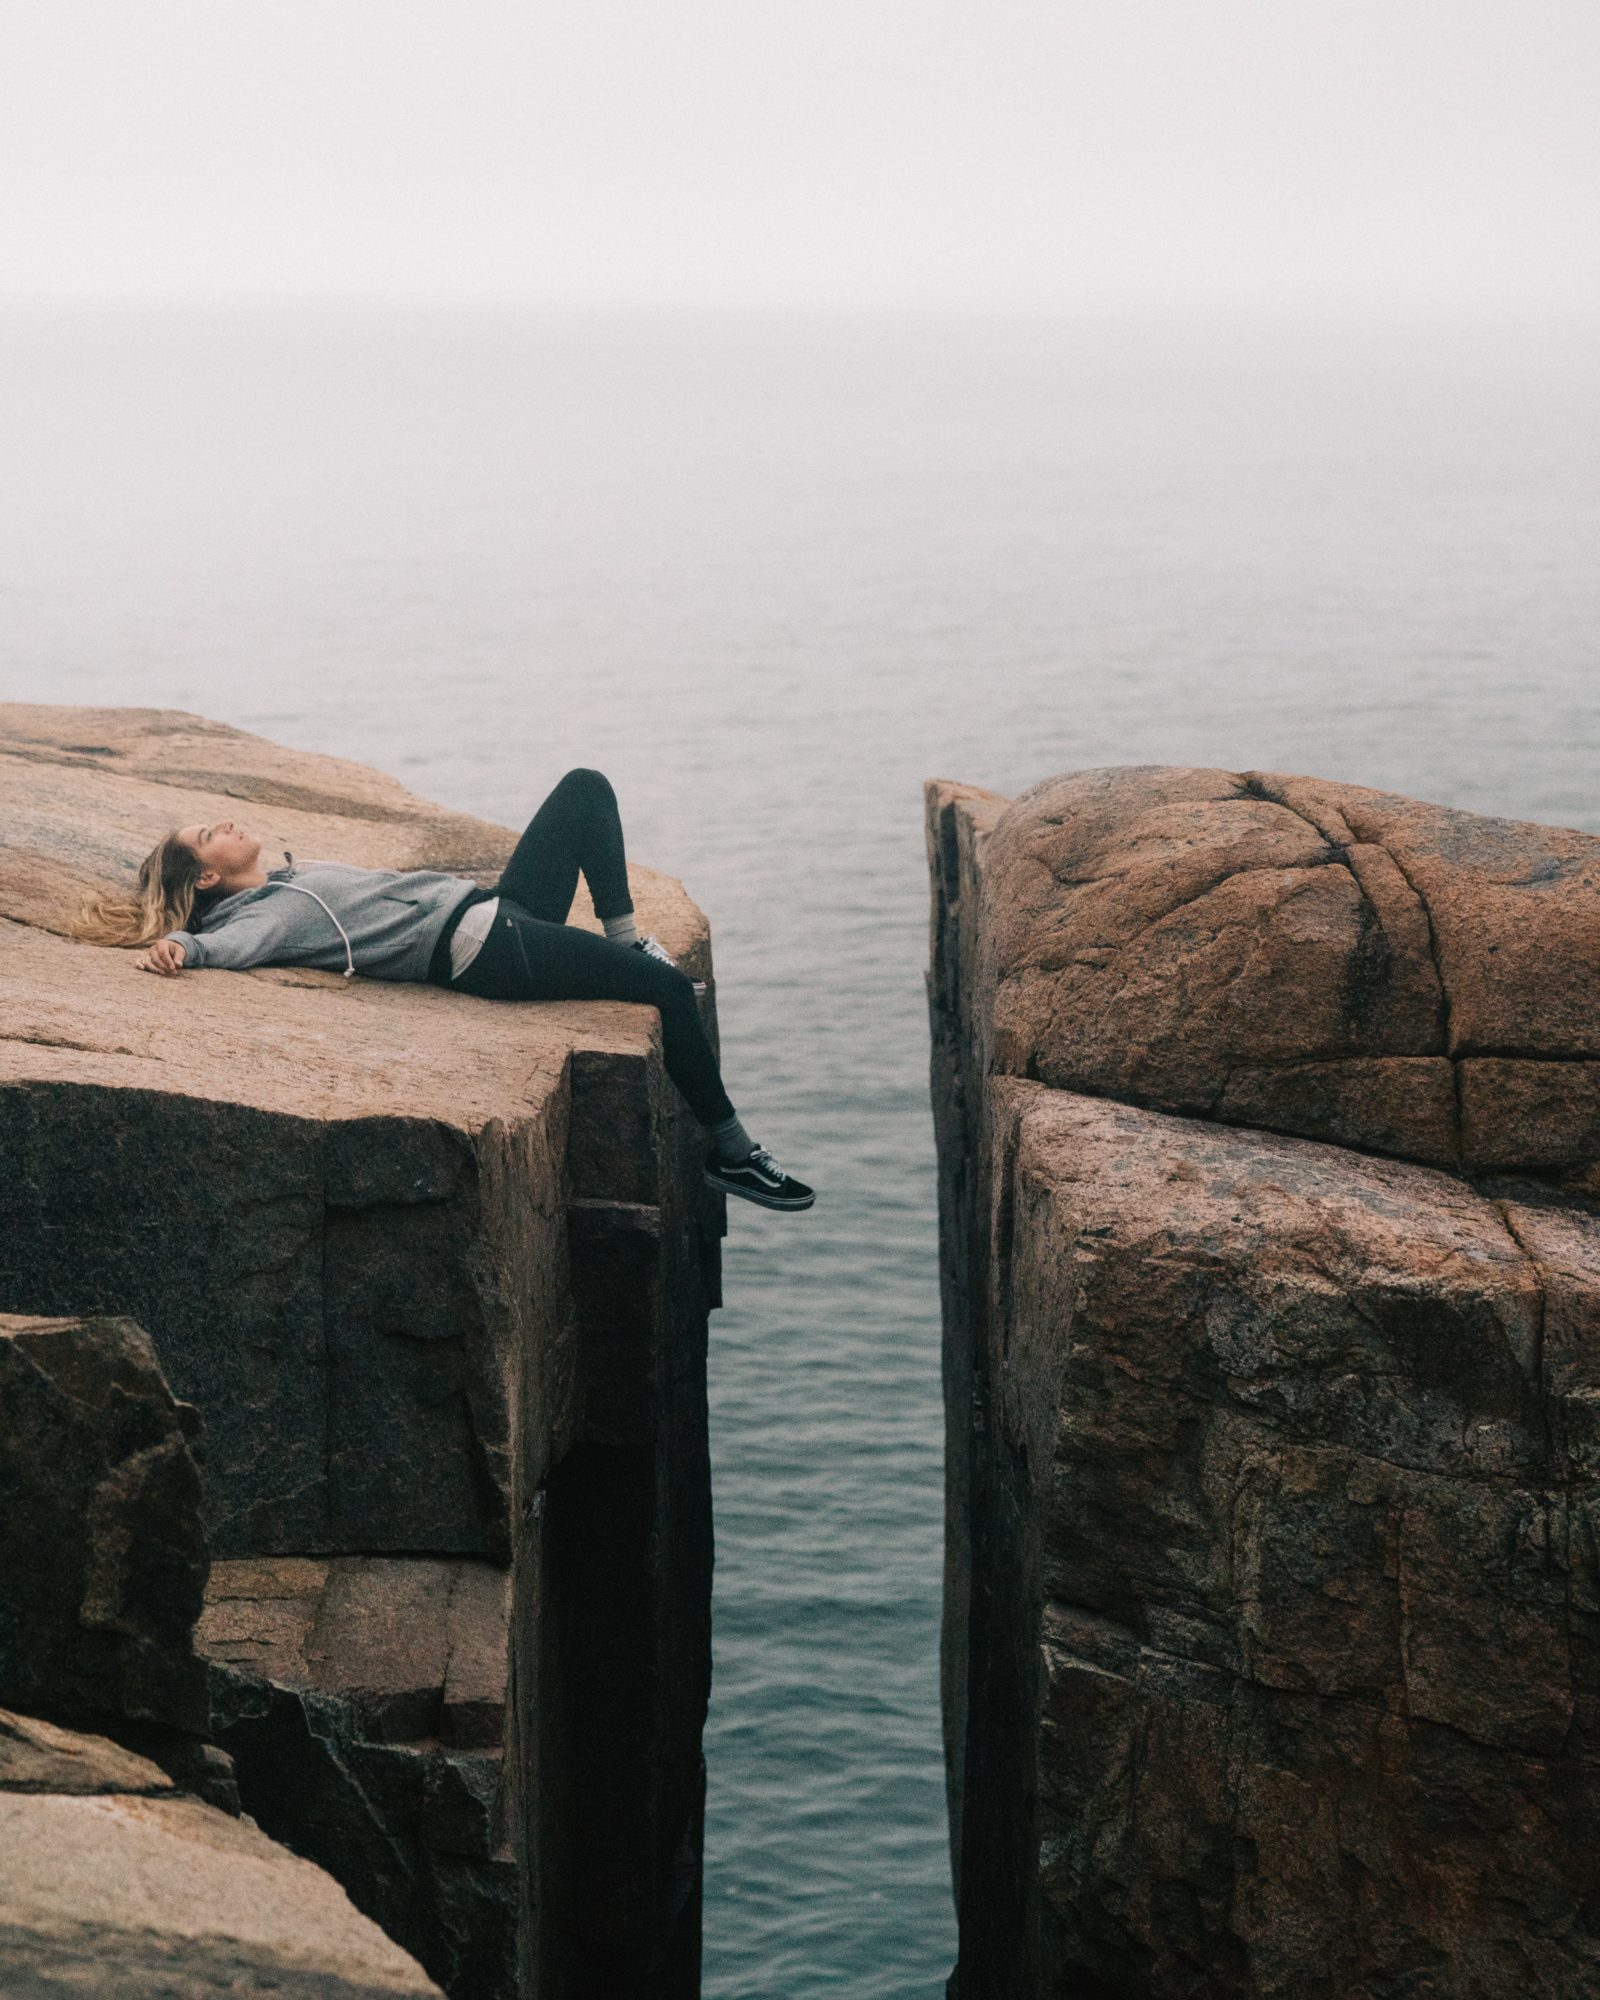 Positive Solitude: Rediscover The Good Of Being Alone